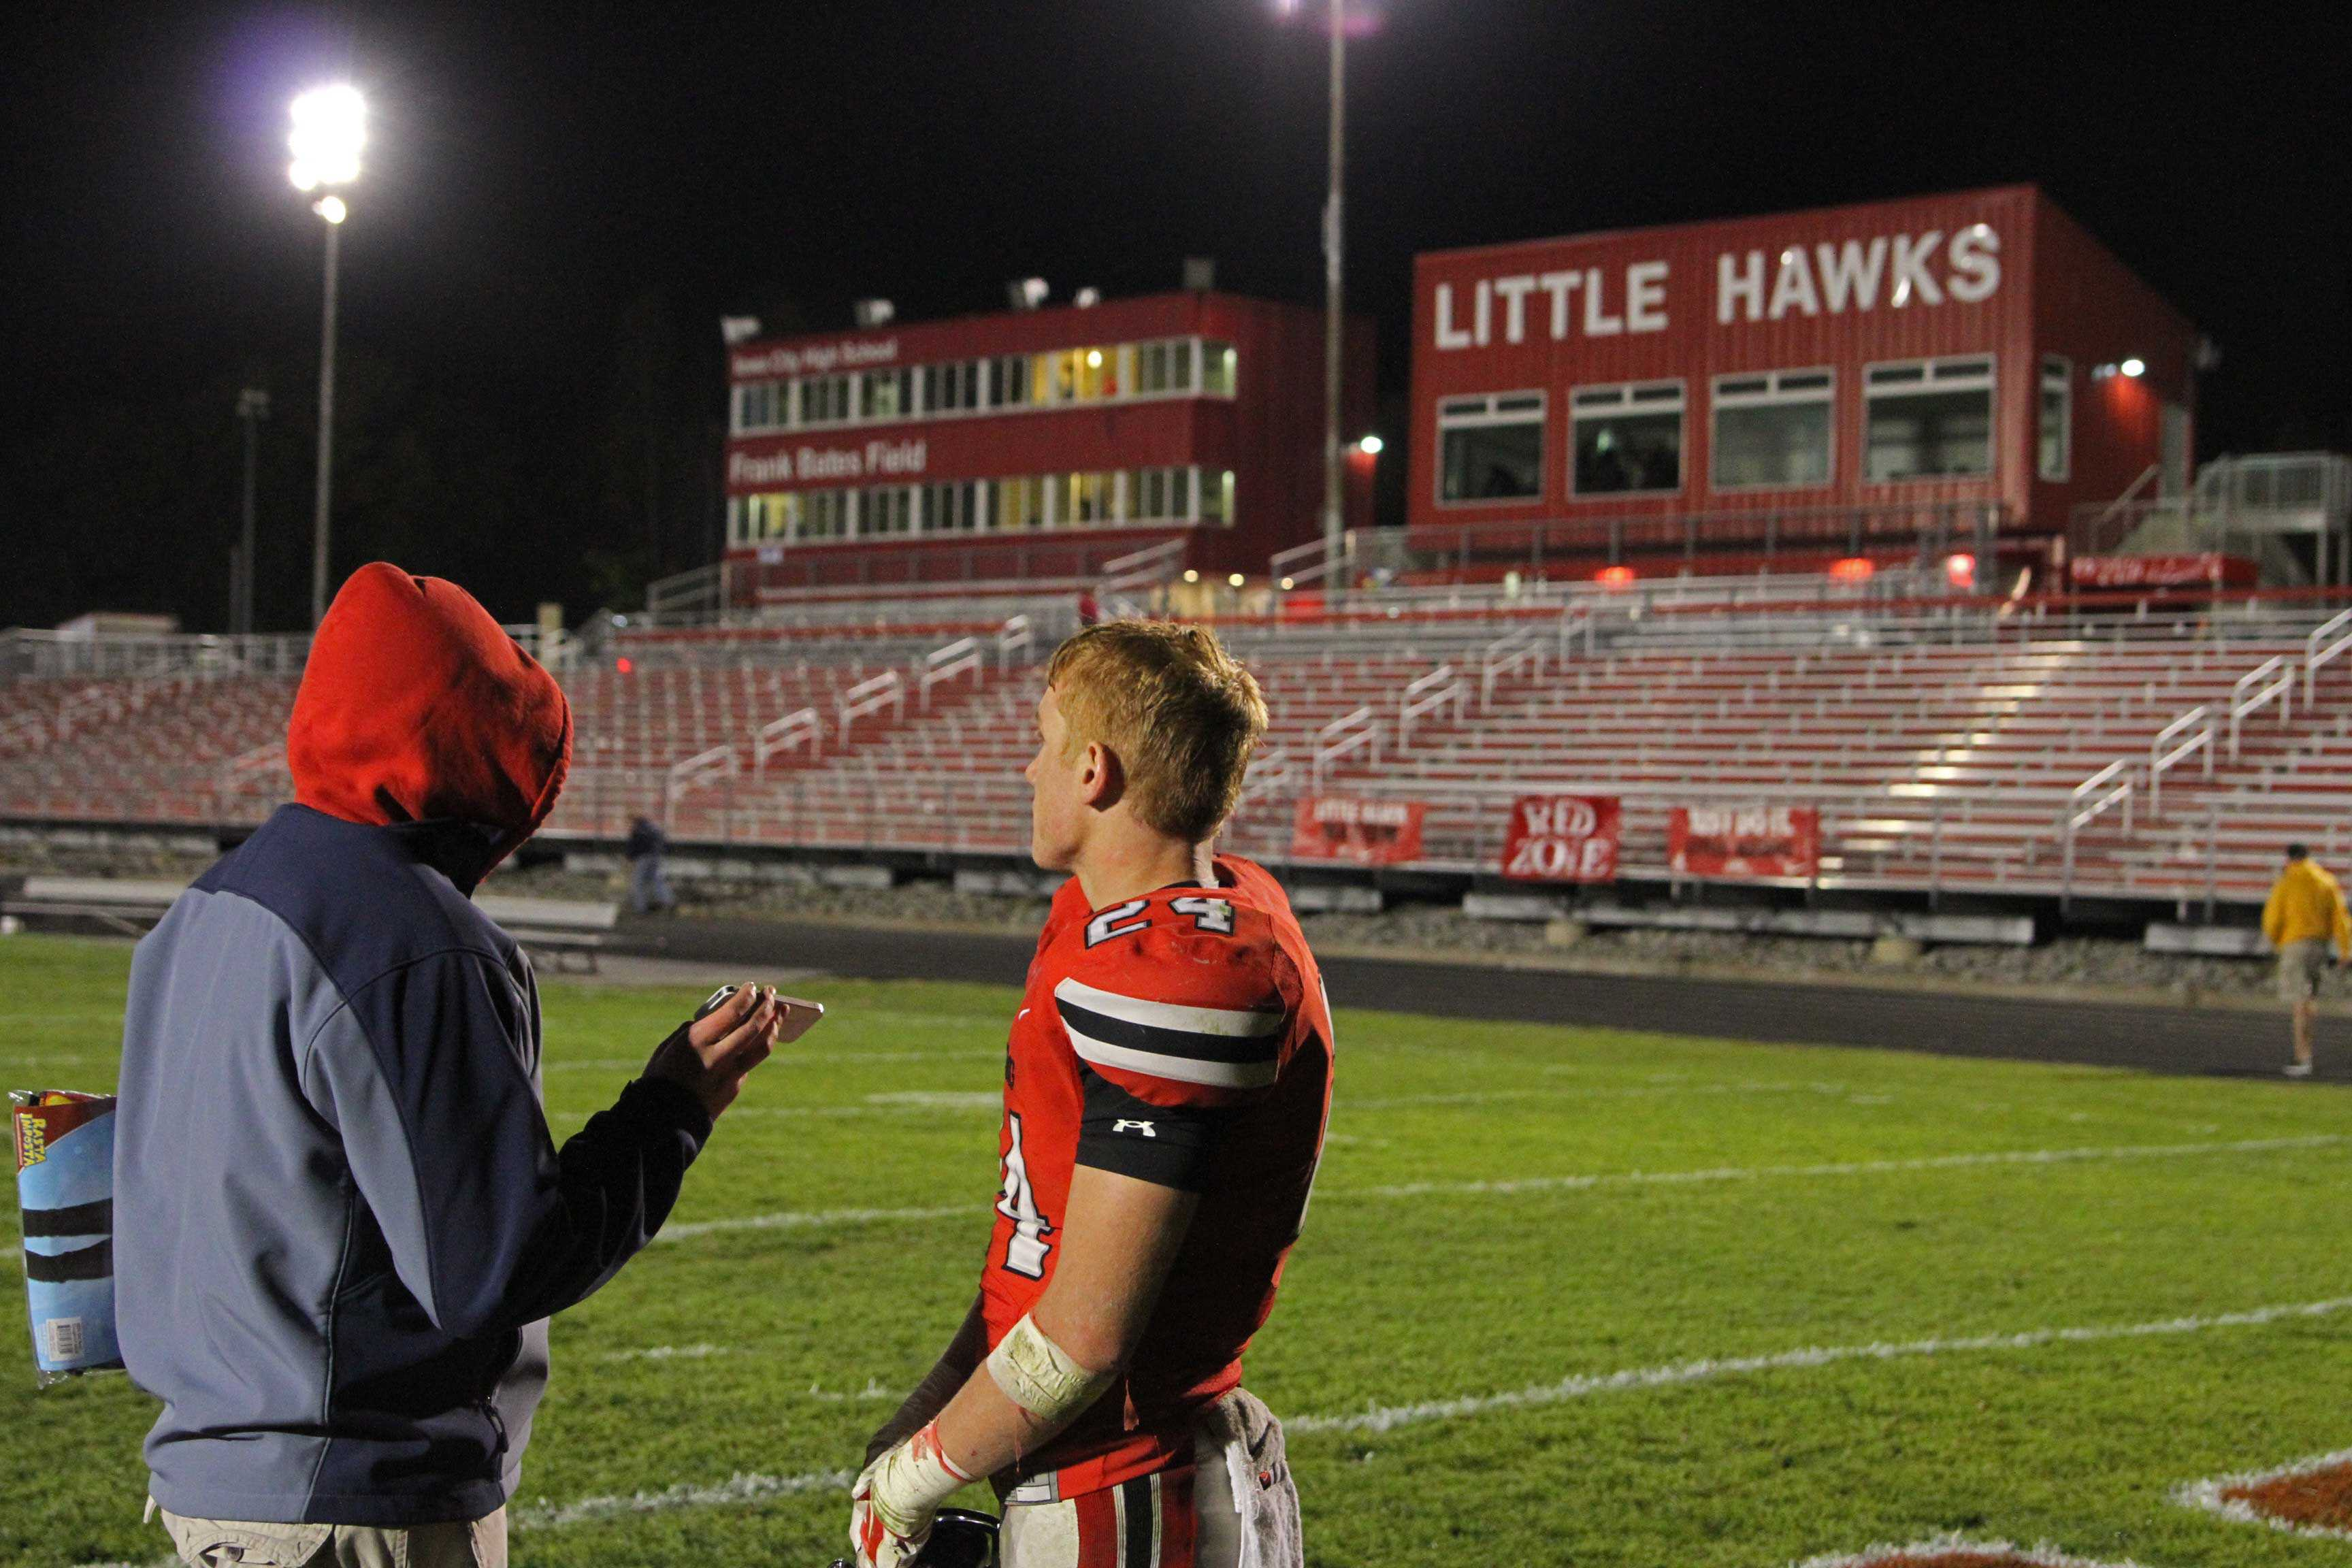 Little+Hawk+Sports+Editor+Jonathan+House+conducts+a+post+game+interview+with+Bryce+Frantz+%2717